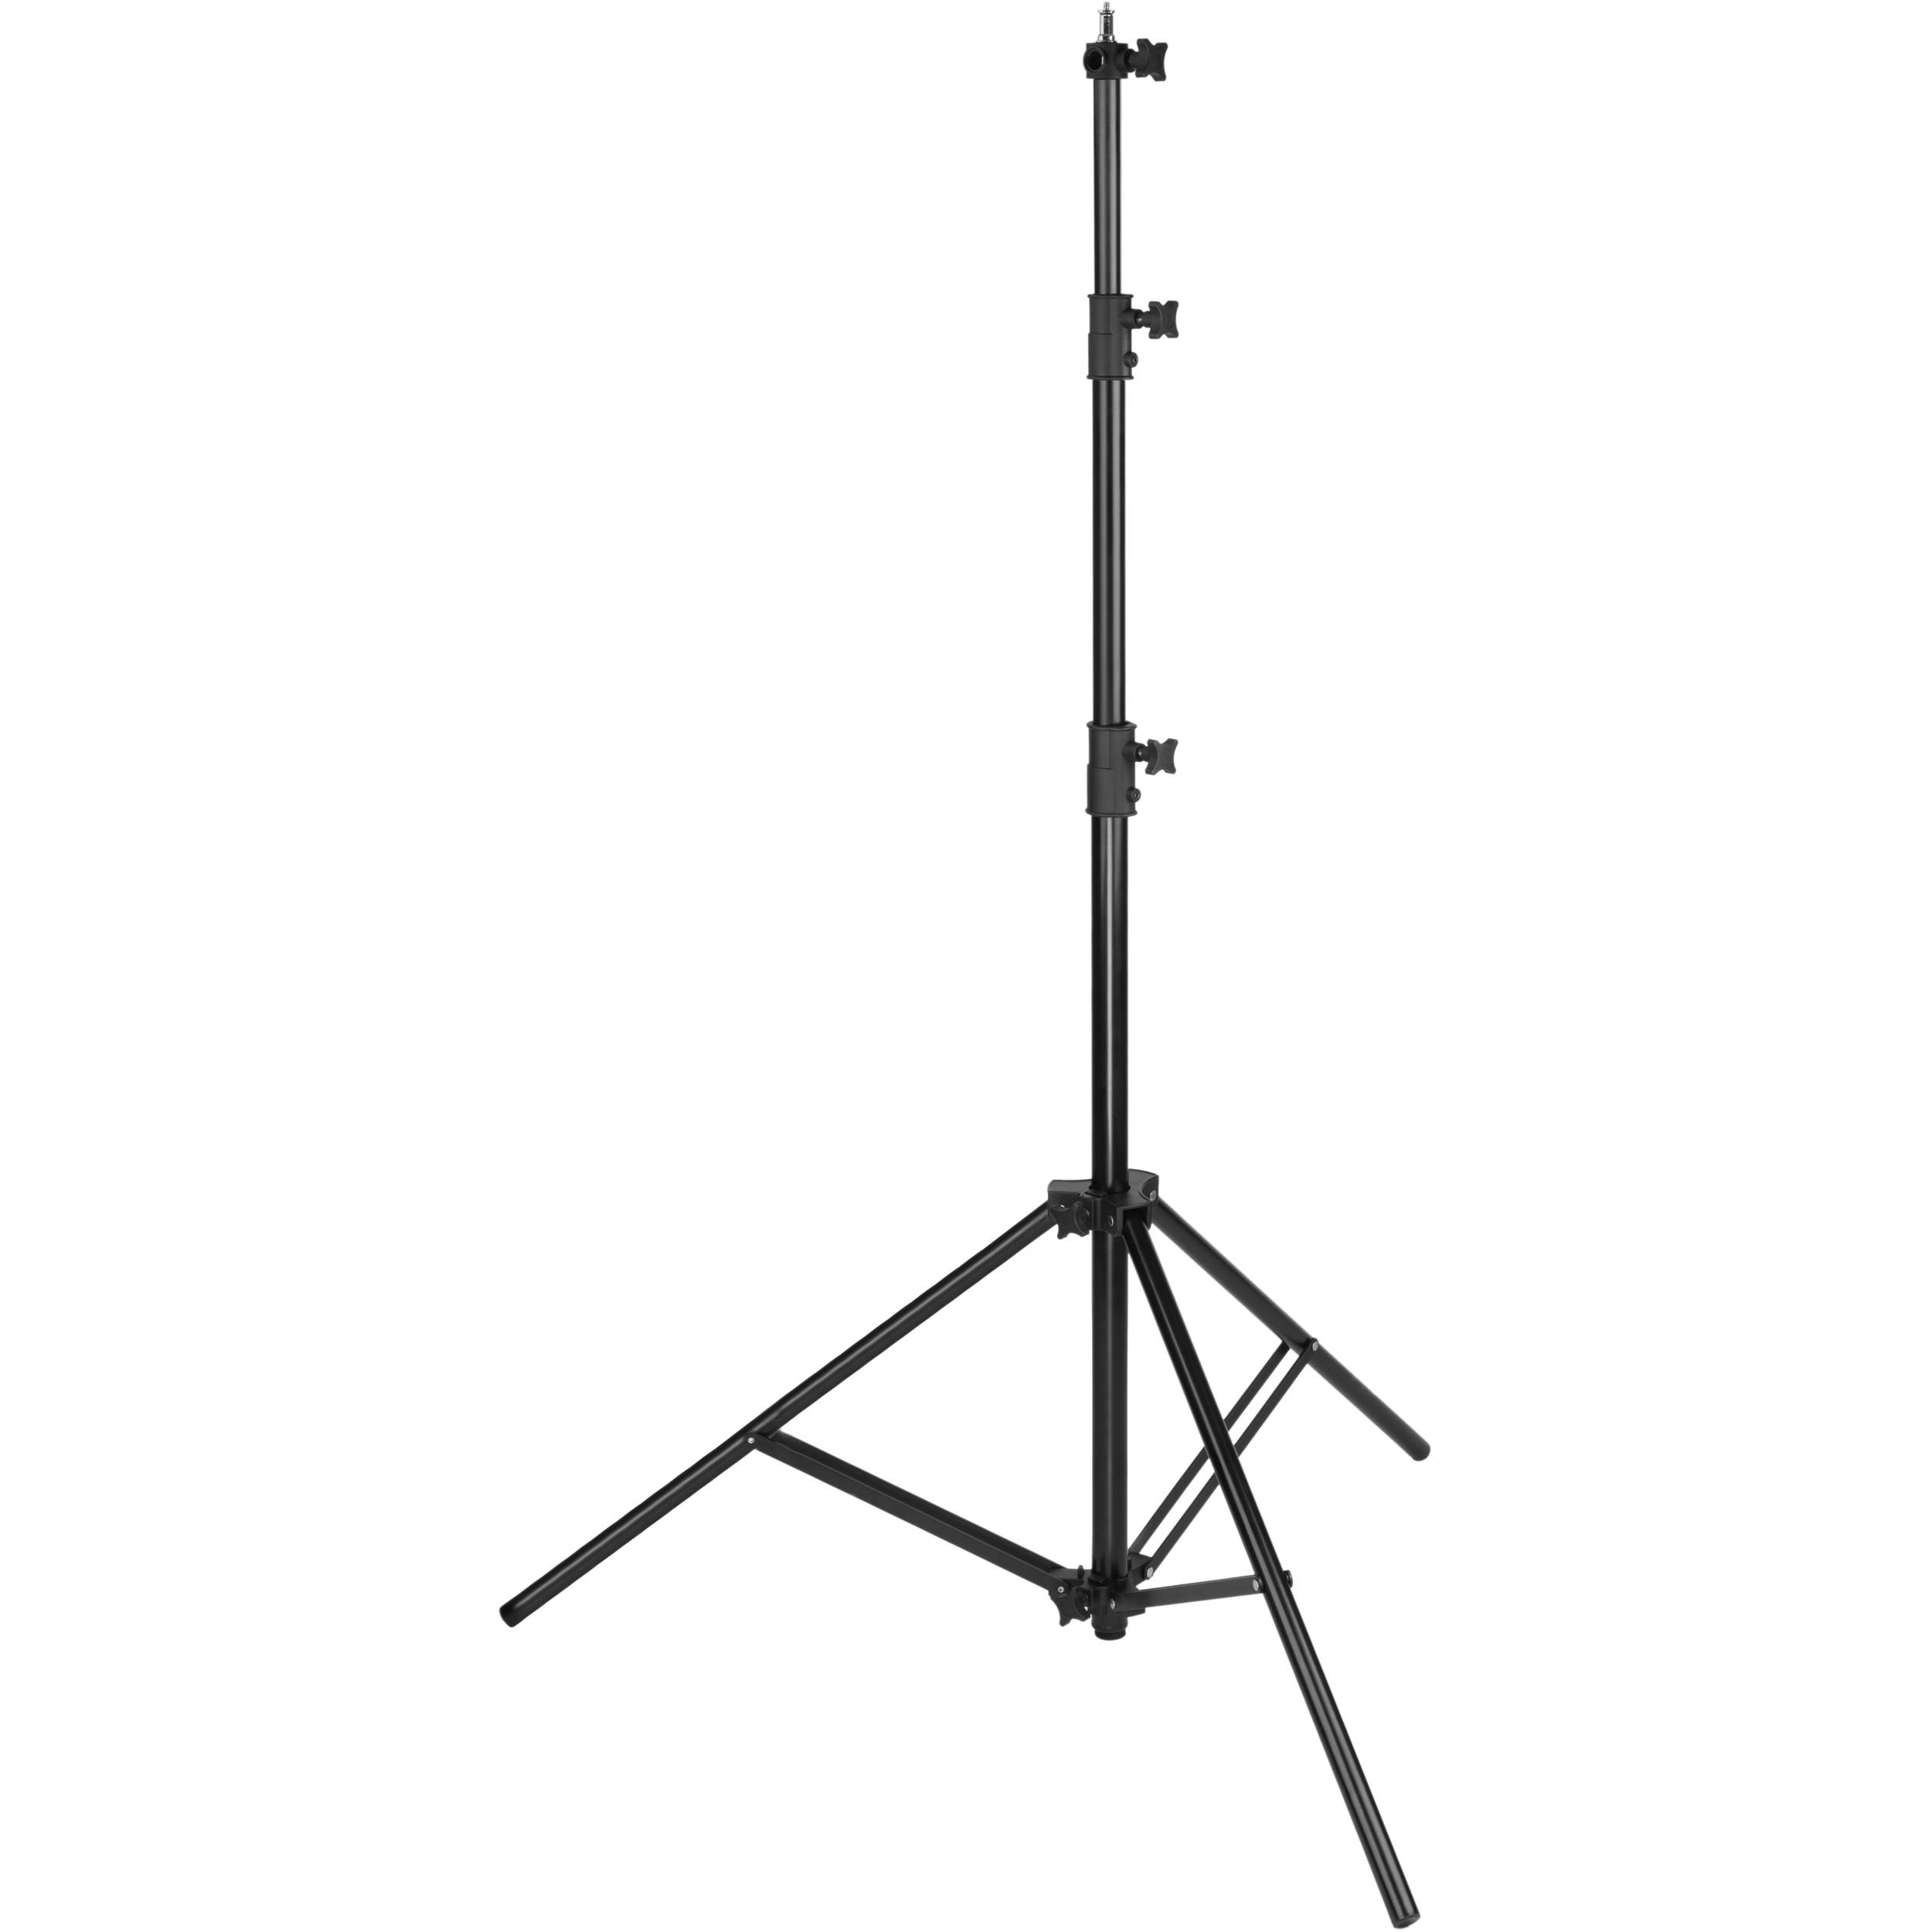 Black, 8 Impact Air-Cushioned Light Stand